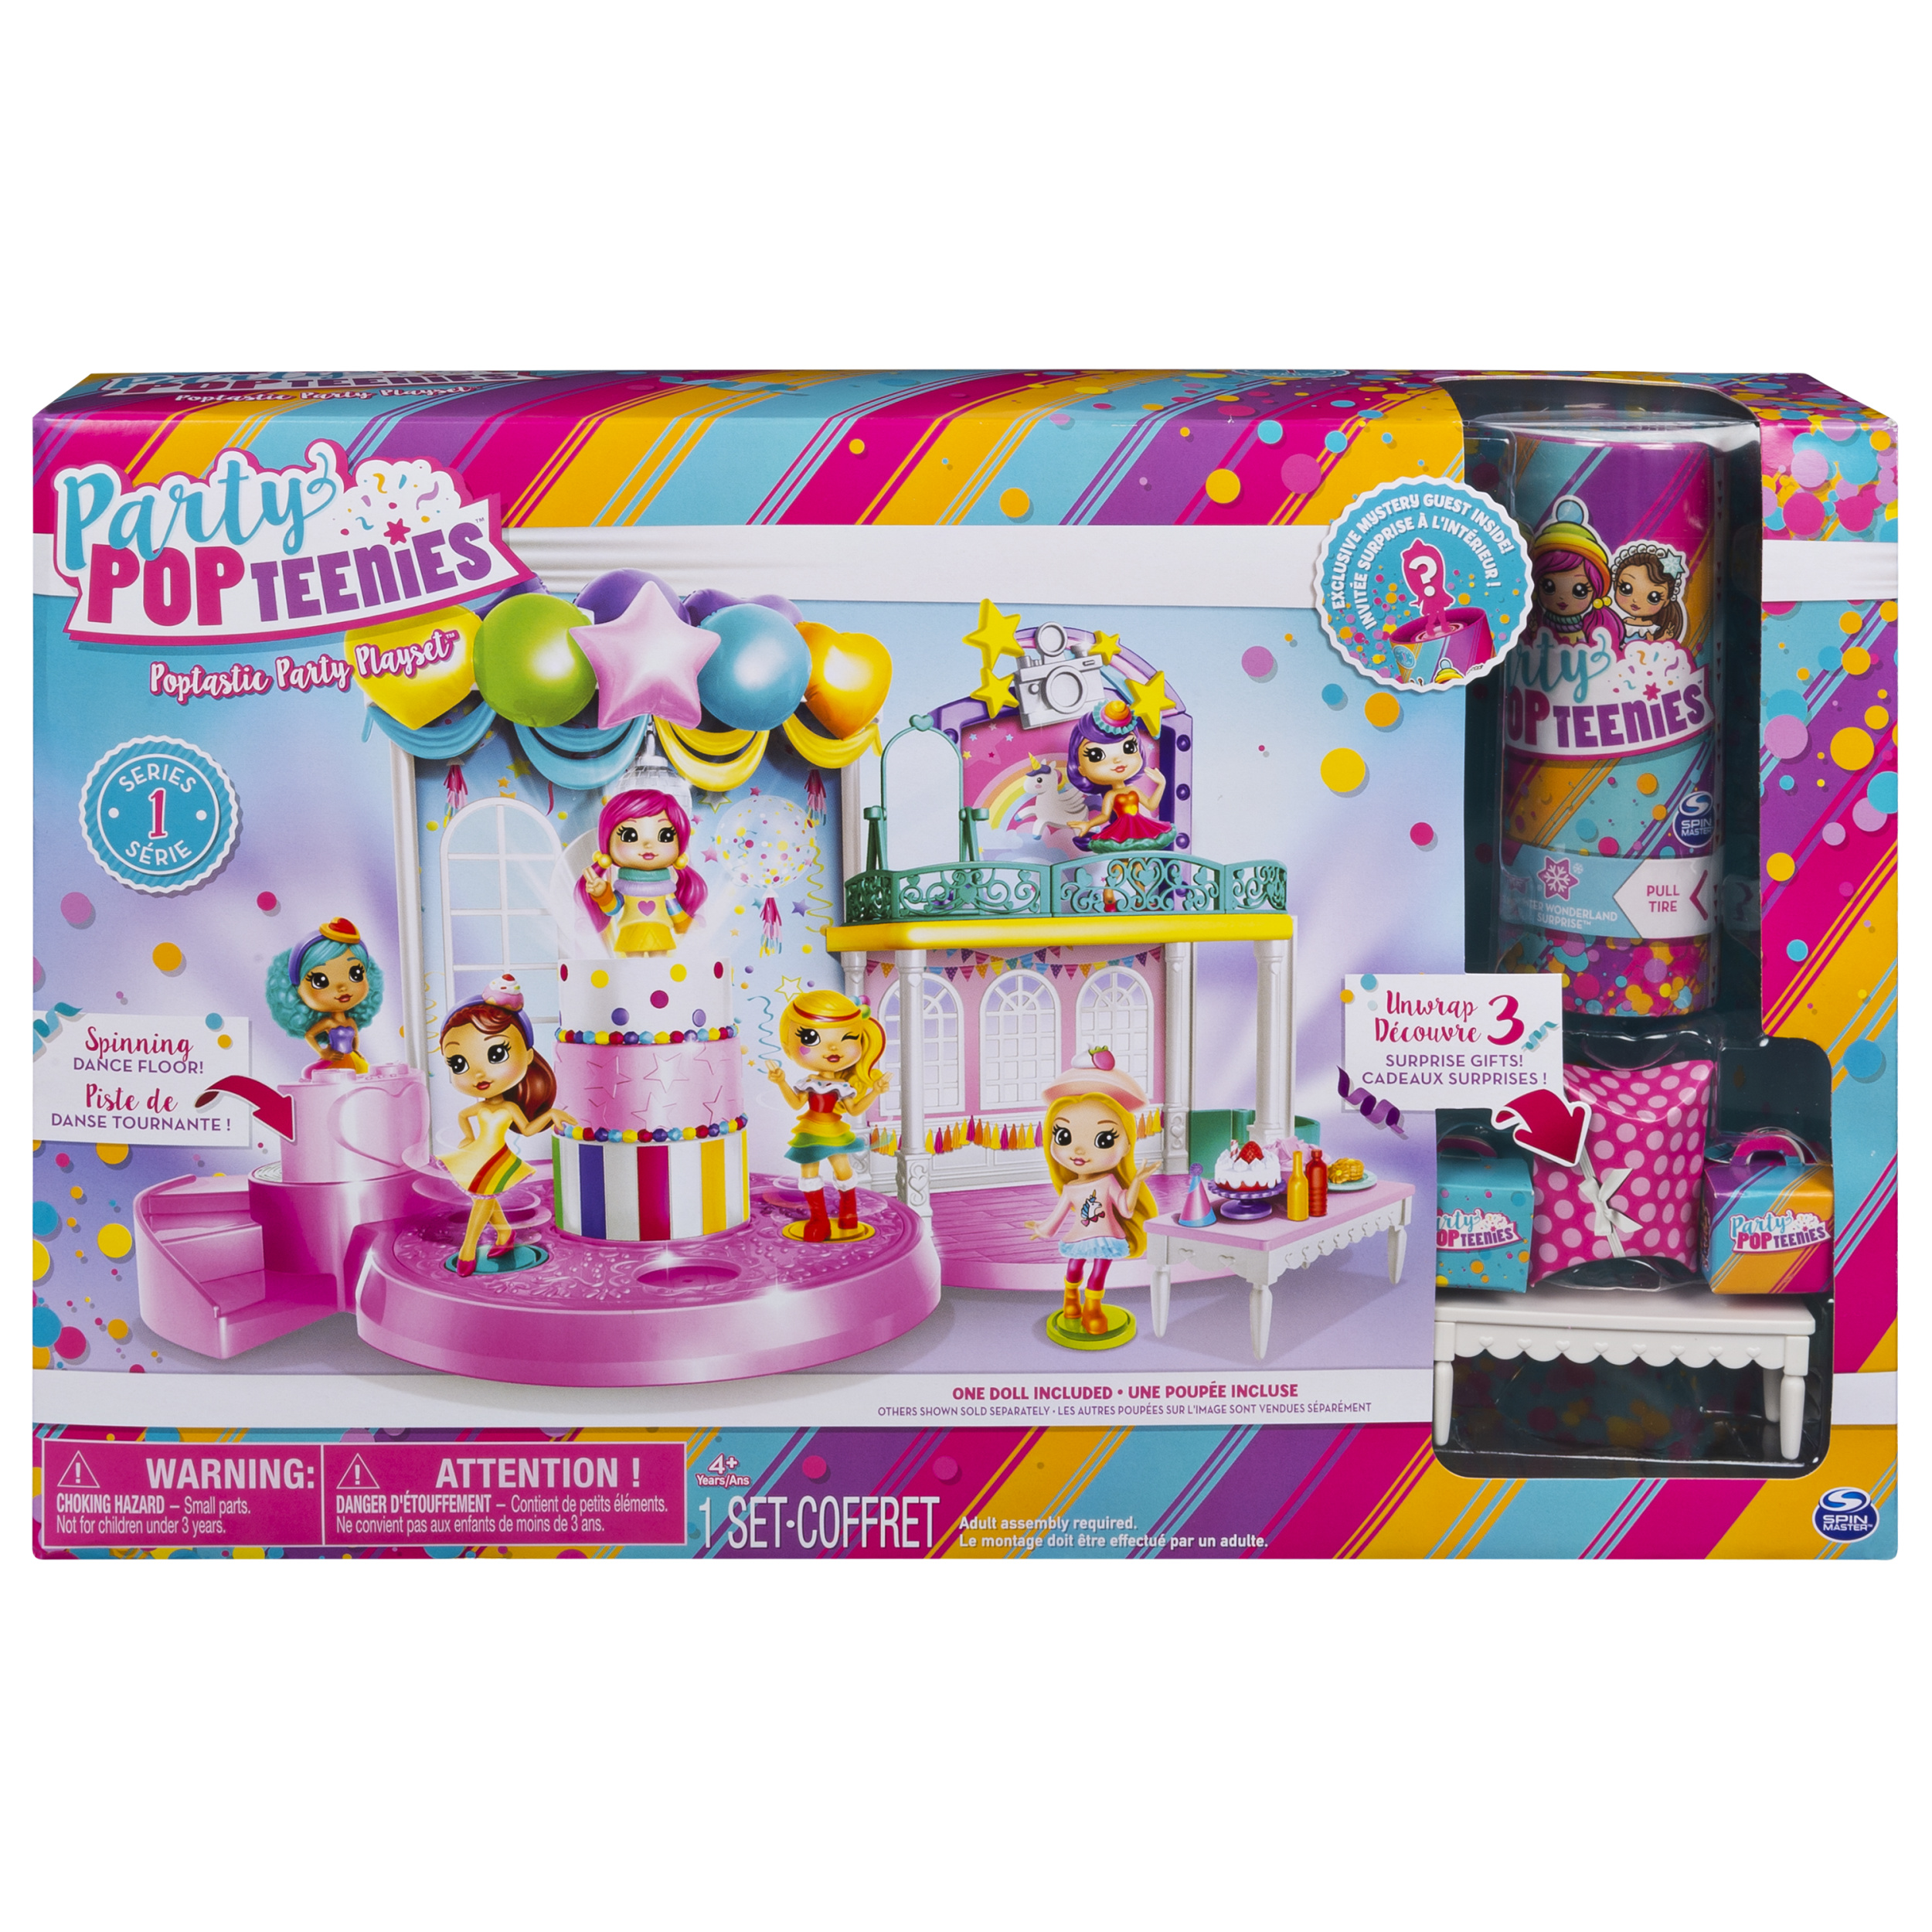 Party Popteenies - Poptastic Party Playset with Confetti, Exclusive Collectible Mini Doll and Accessories, for Ages 4 and Up